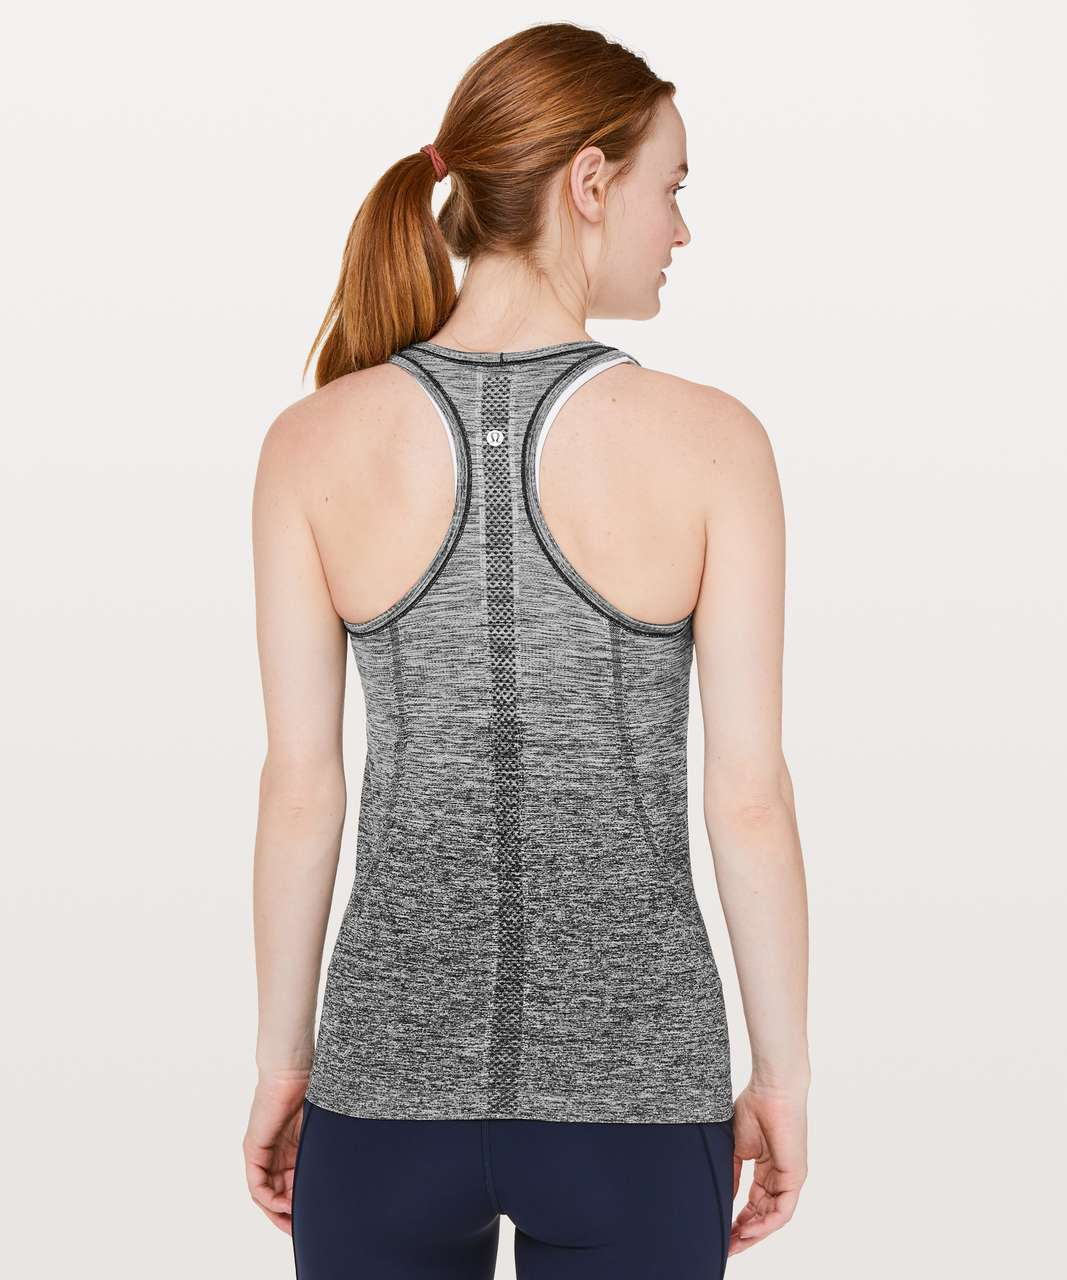 Lululemon Swiftly Tech Racerback - Black / White (Ombre)